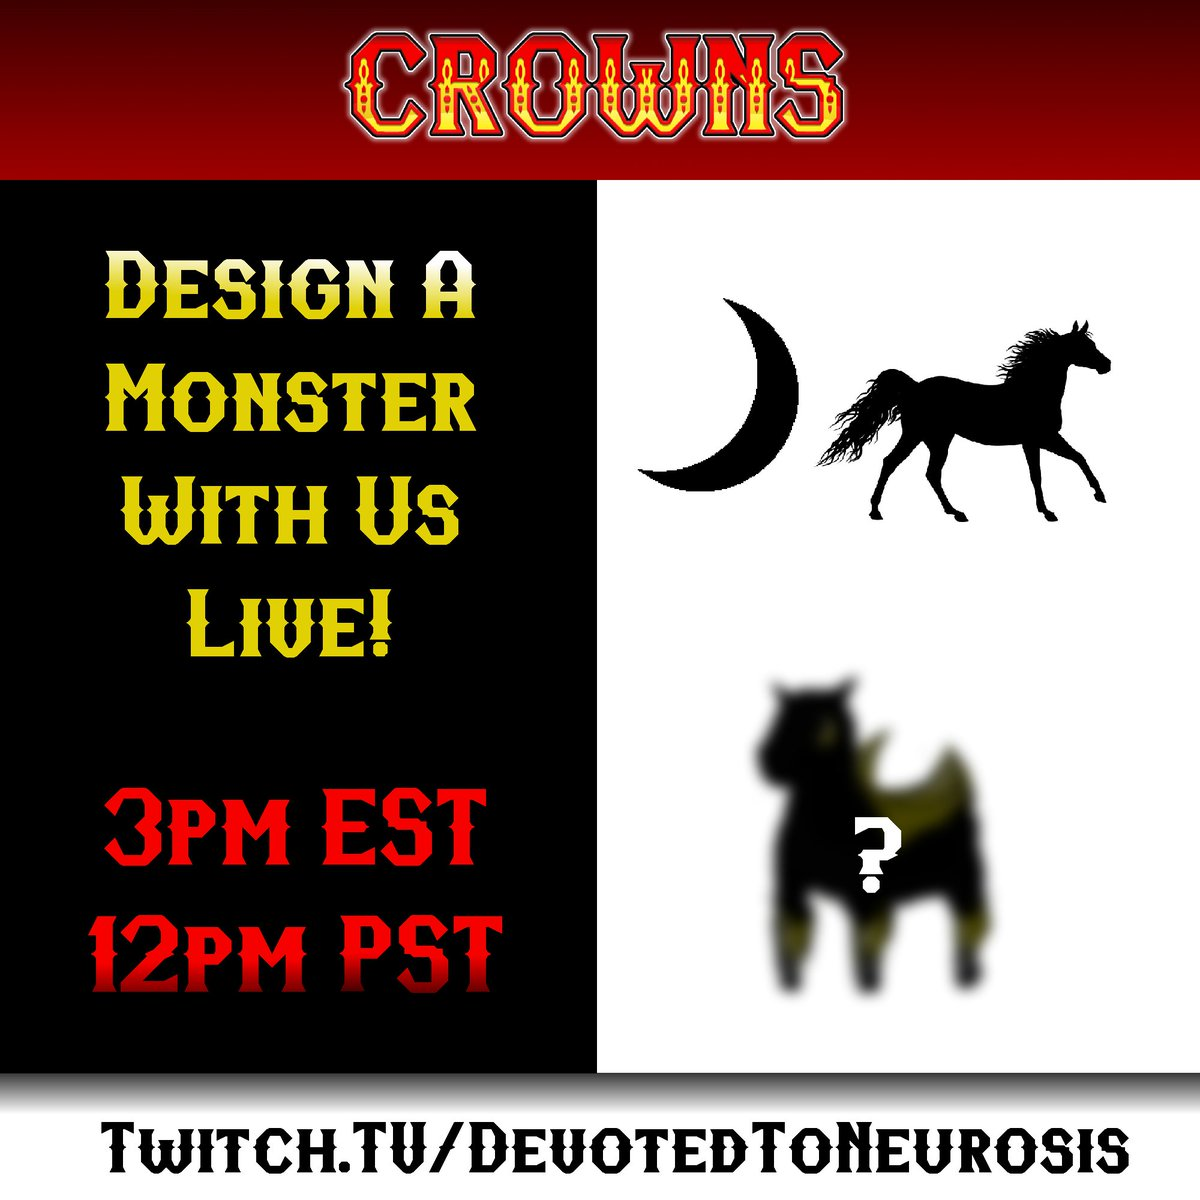 Live in 30 minutes!   https://www. twitch.tv/devotedtoneuro sis &nbsp; …   #gamedev #indiedev #madewithunity #pixelart #gaming #games #gamer #pcgaming #stream #twitch<br>http://pic.twitter.com/75cz3XoTrj